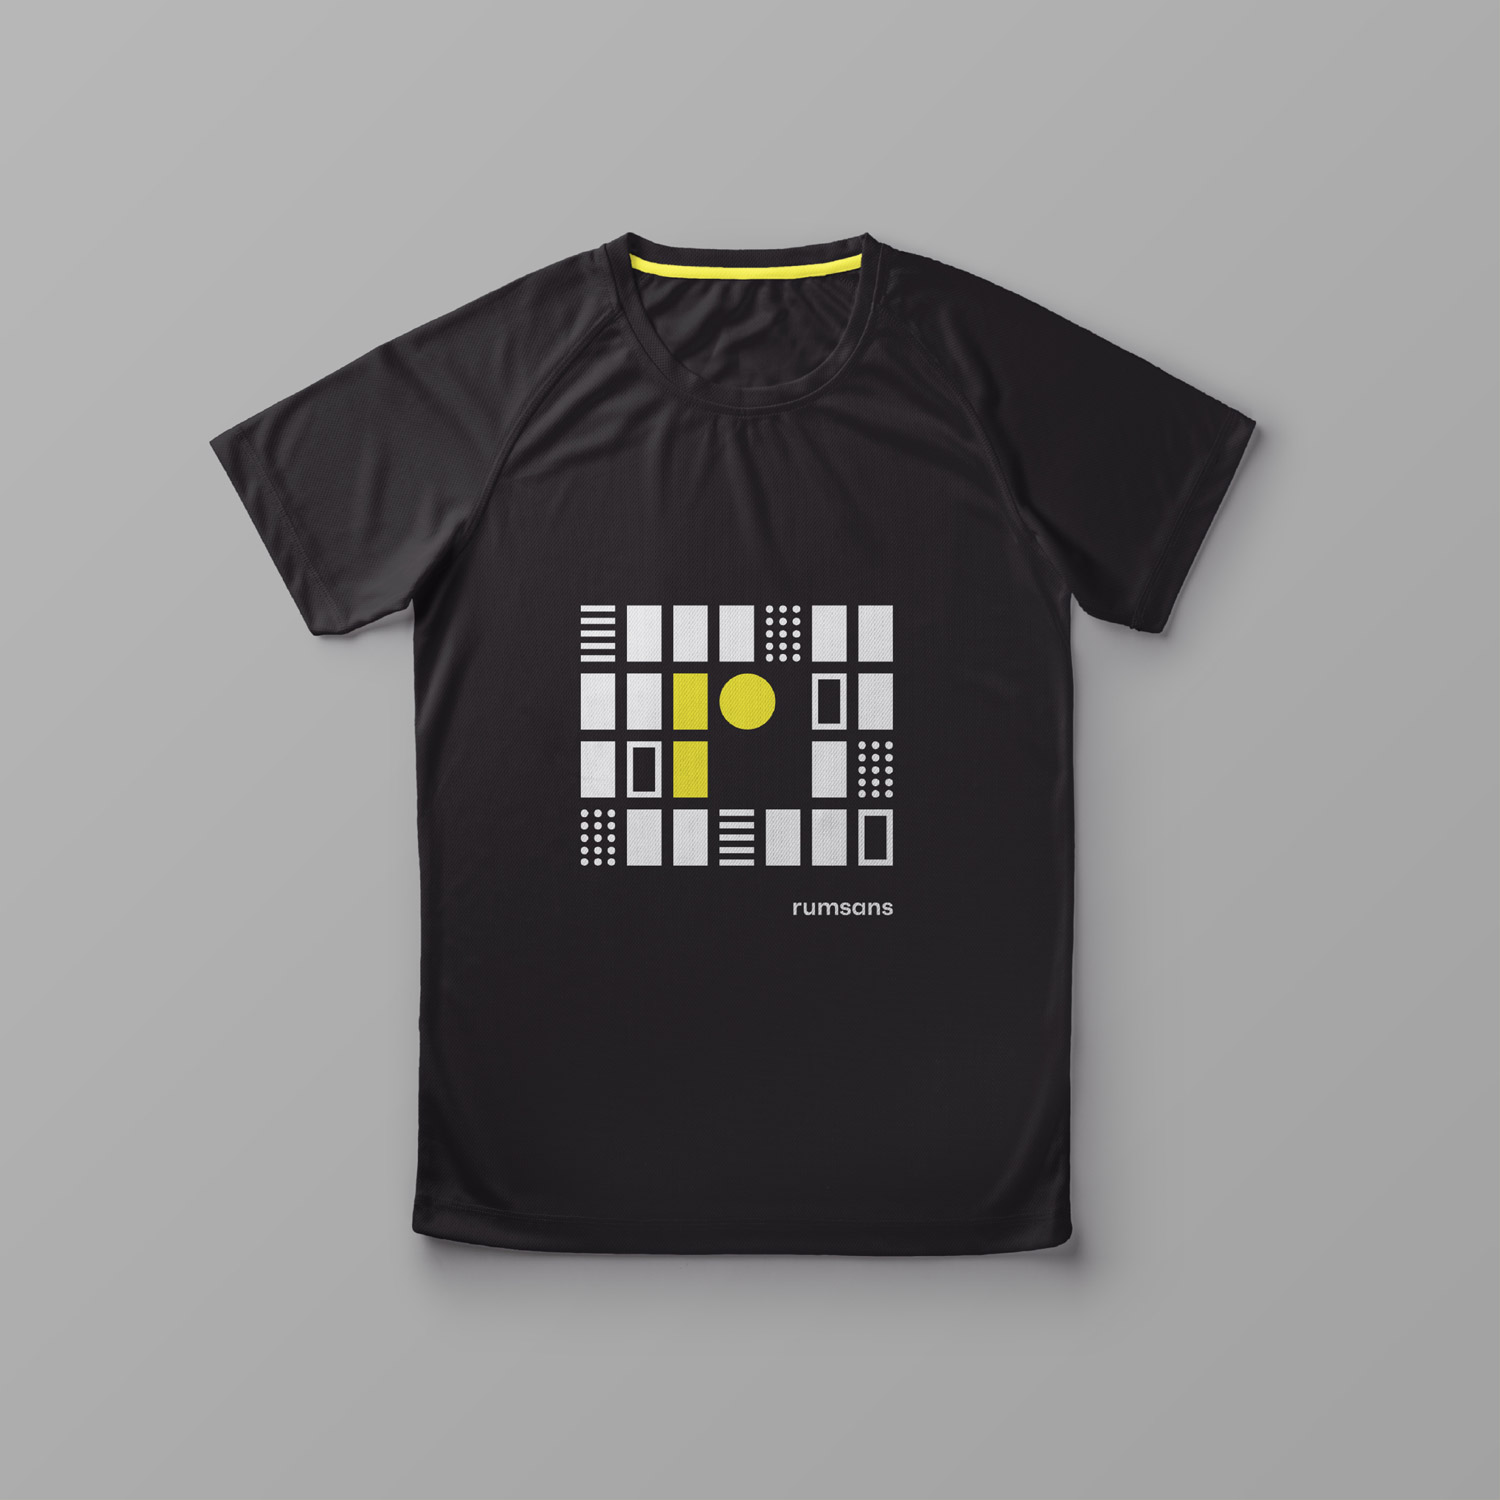 Mobile phone displaying the Rumsans instagram on the screen. Black t-shirt printed with the Rumsans visual identity consisting of graphic elements in the colors black, white and yellow.